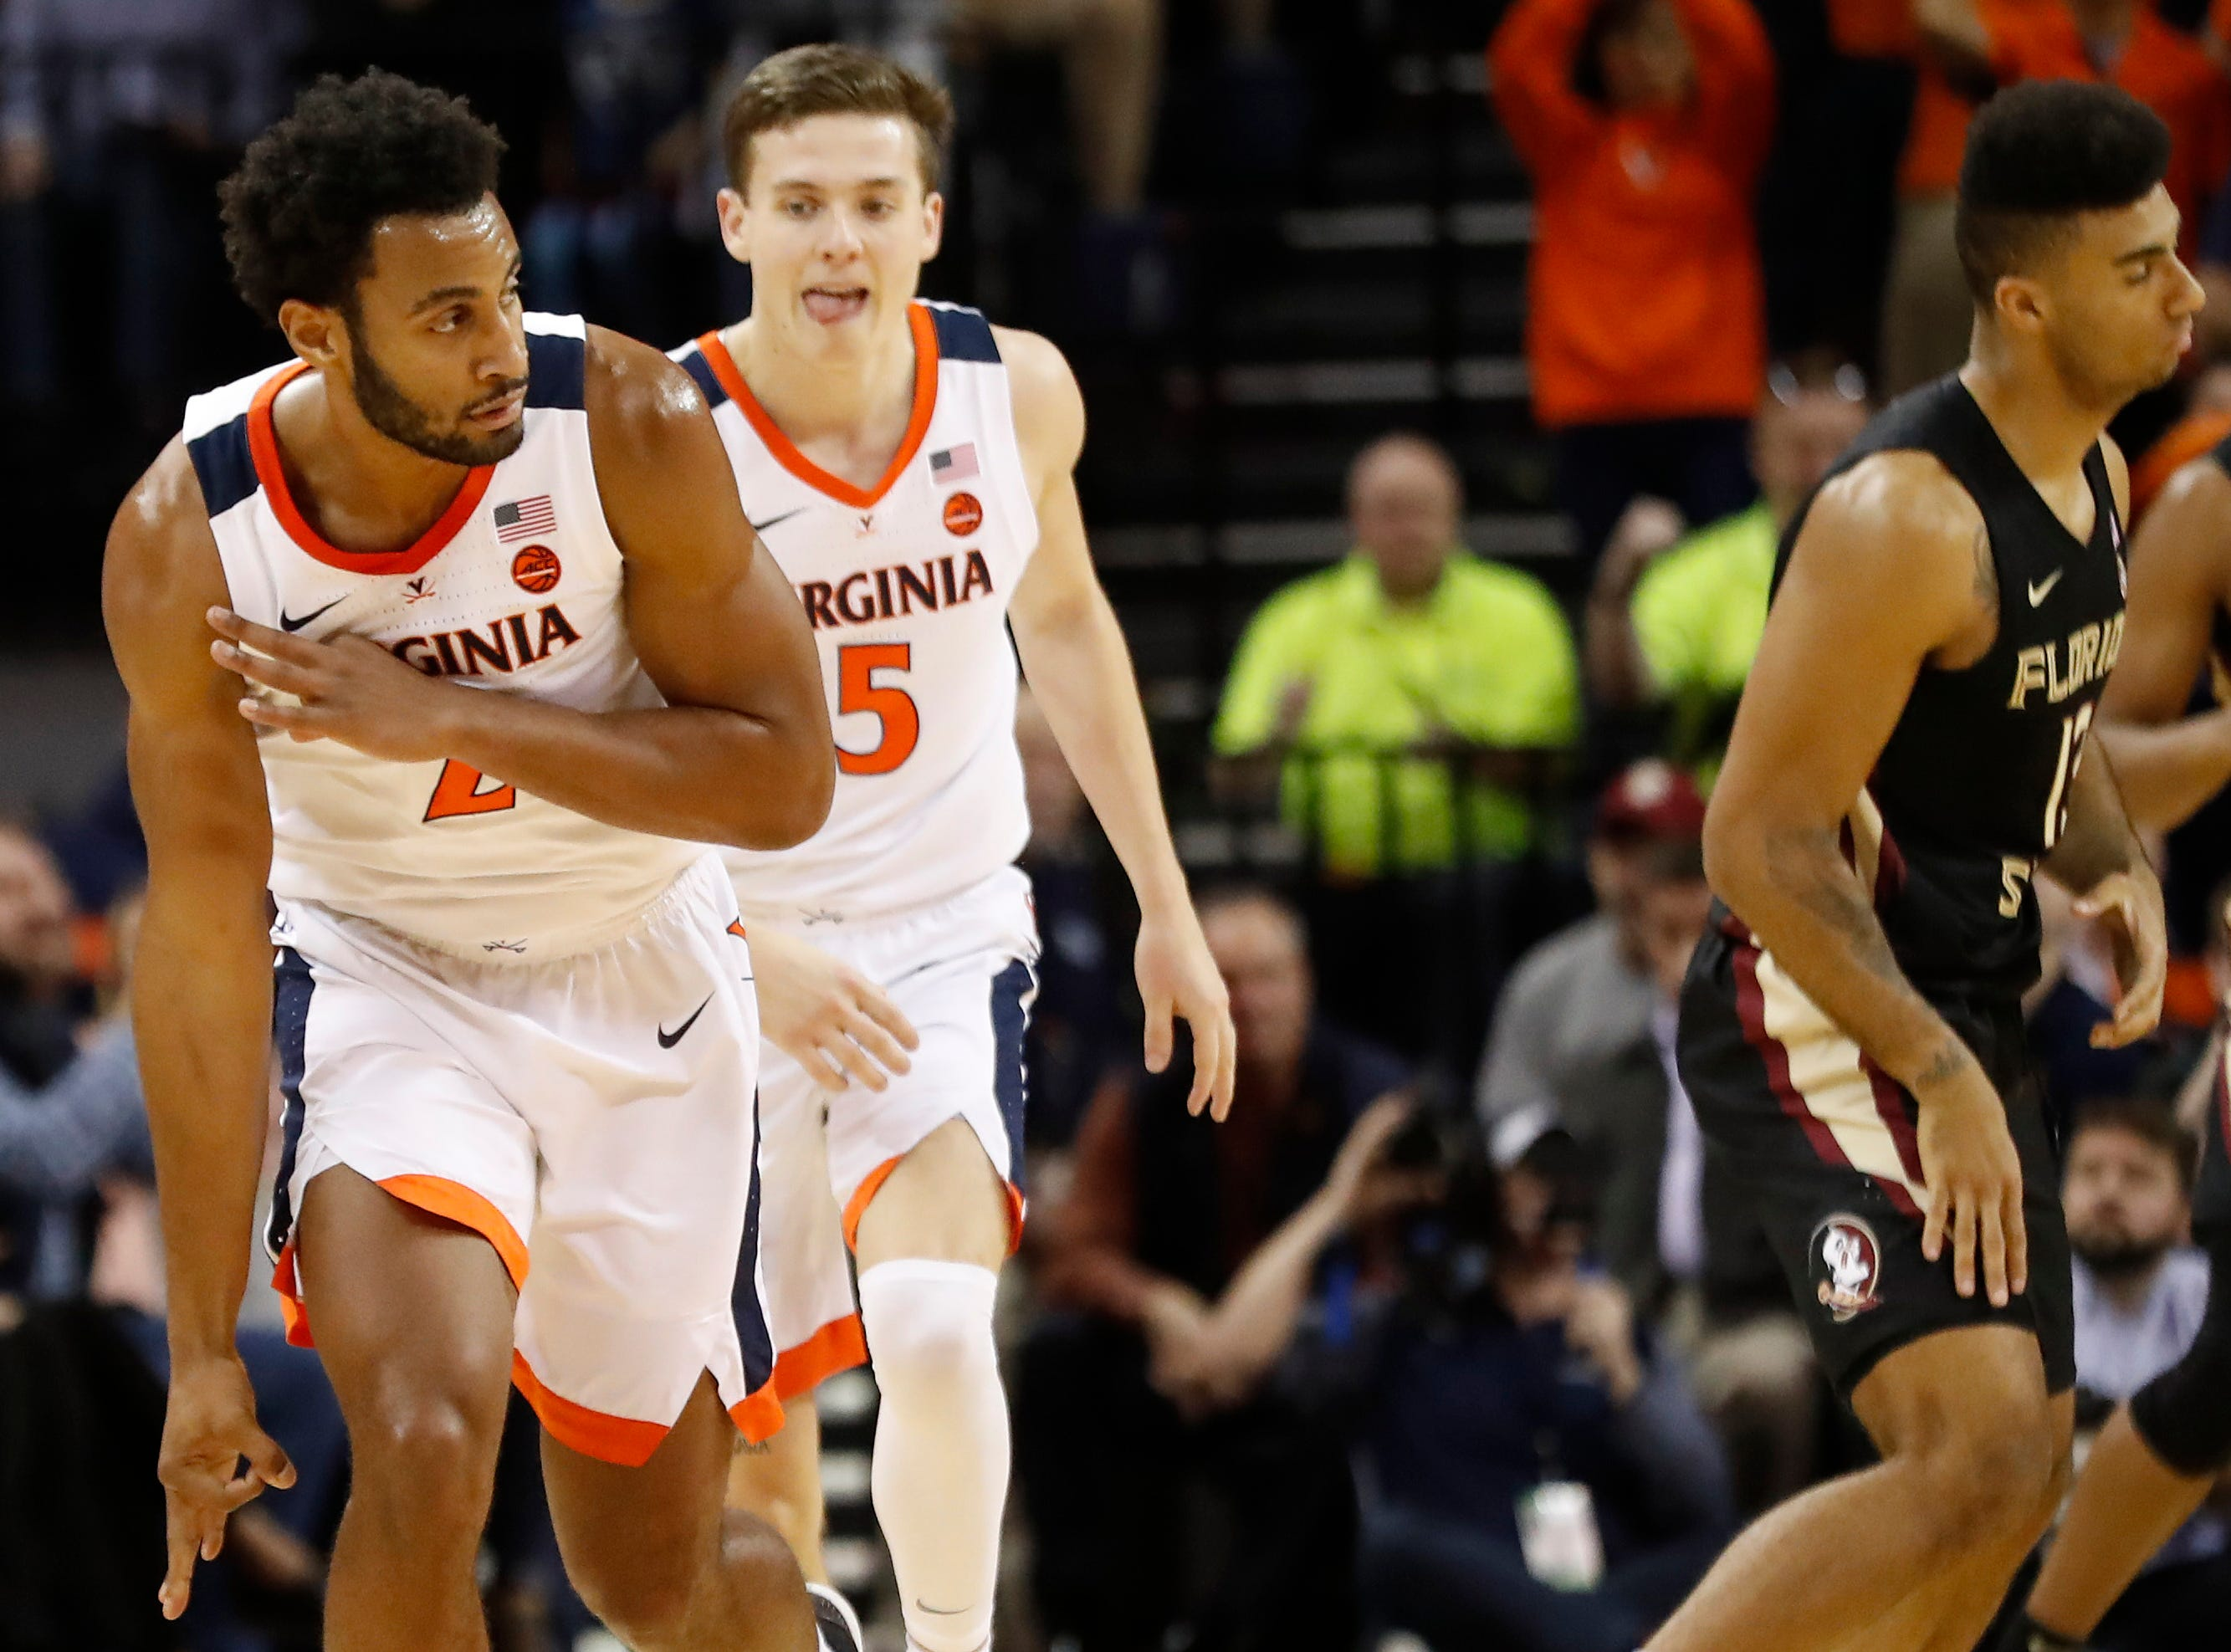 Jan 5, 2019; Charlottesville, VA, USA; Virginia Cavaliers guard Braxton Key (2) celebrates in front of Cavaliers guard Kyle Guy (5) after making a three-point field goal against the Florida State Seminoles in the first half at John Paul Jones Arena. Mandatory Credit: Geoff Burke-USA TODAY Sports